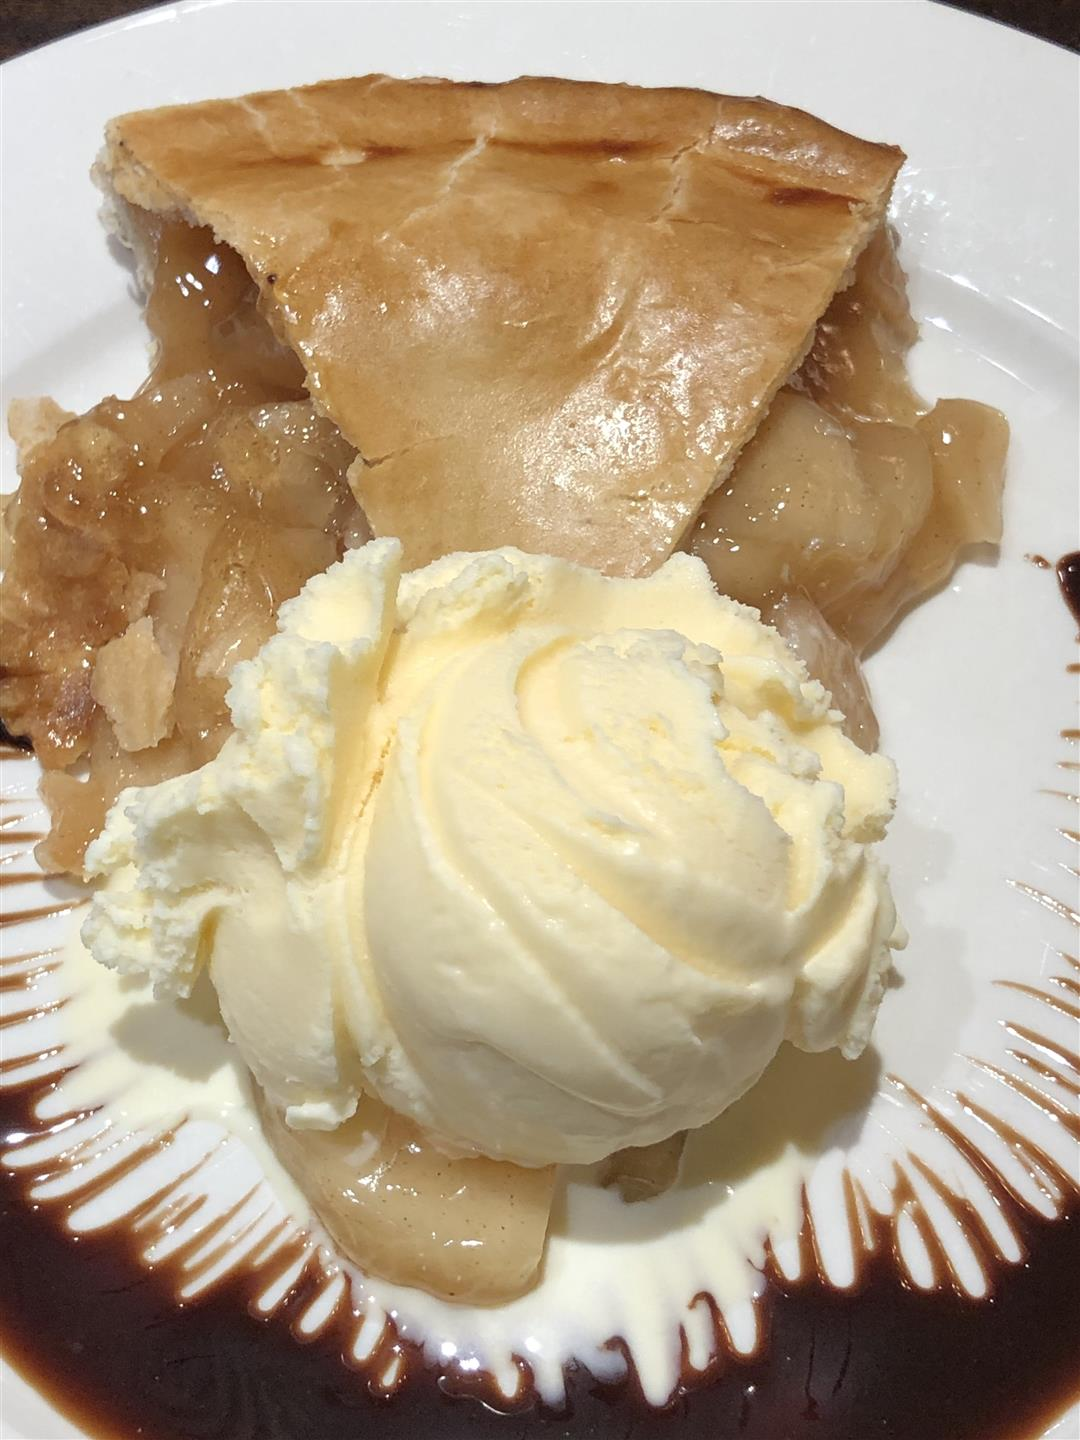 a slice of apple pie, with a scoop of vanilla ice cream beside it